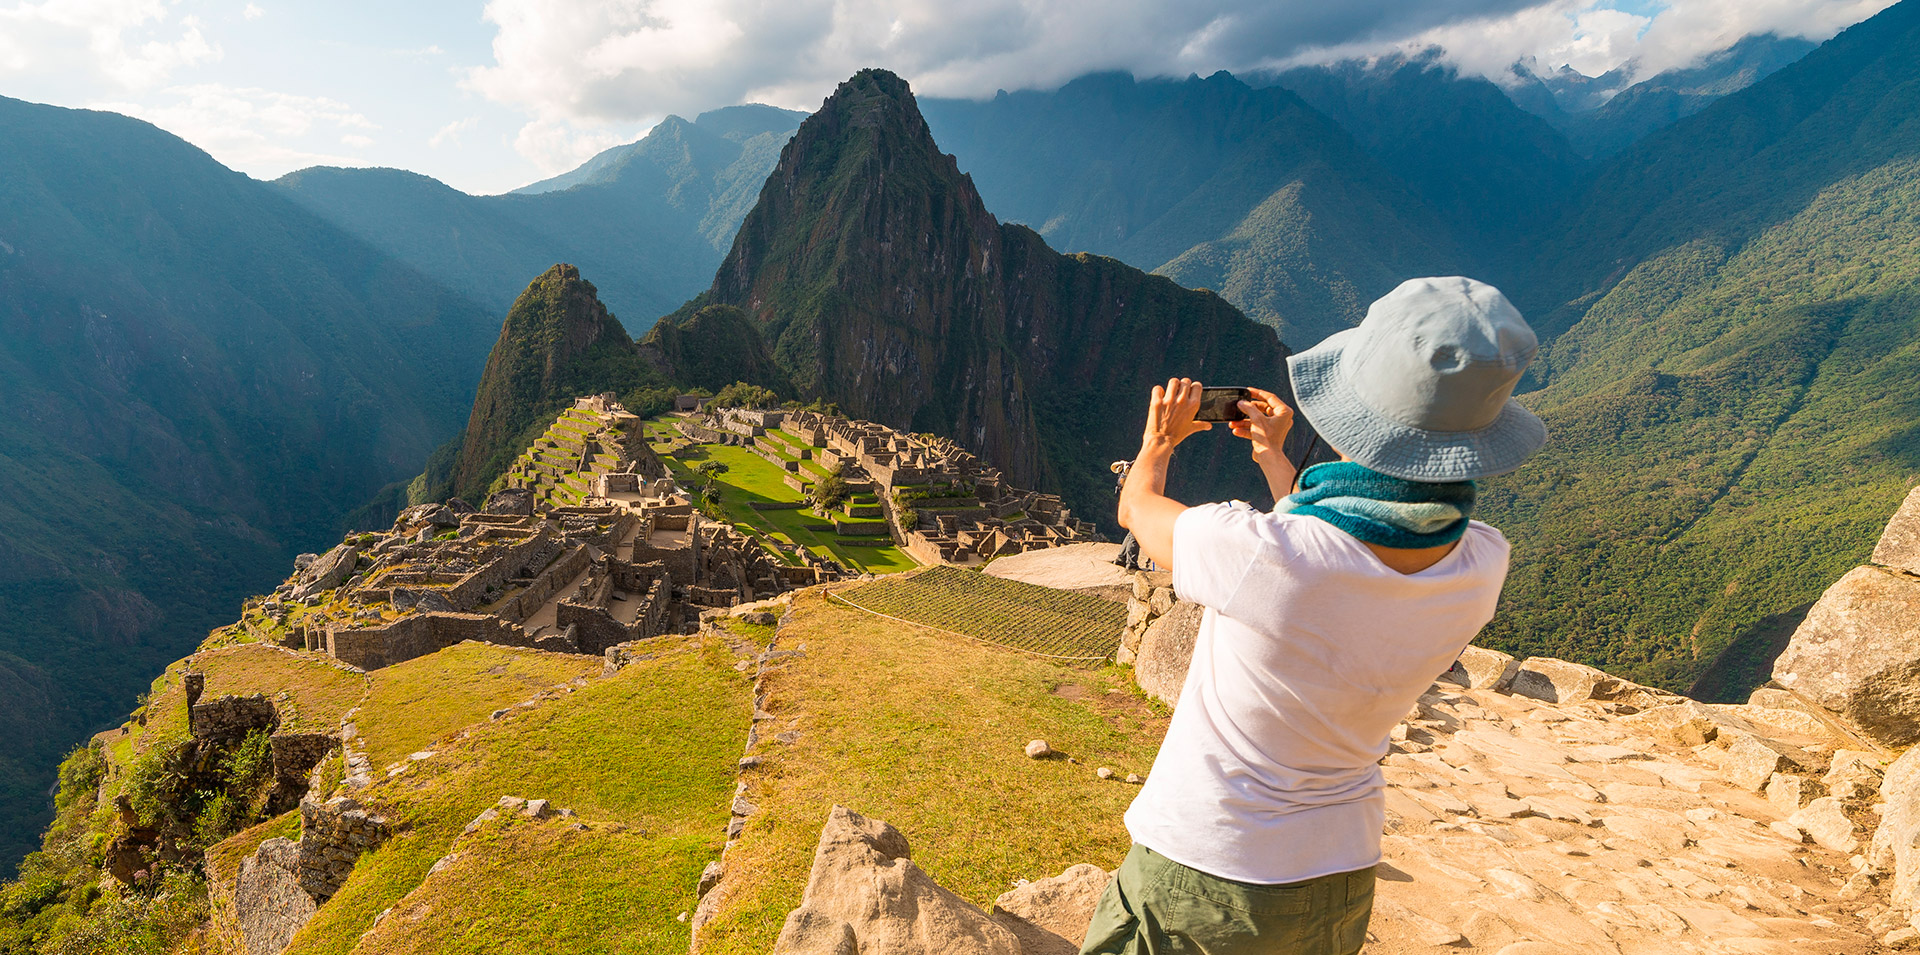 Top 5 Countries You Should Visit In South America In 2021